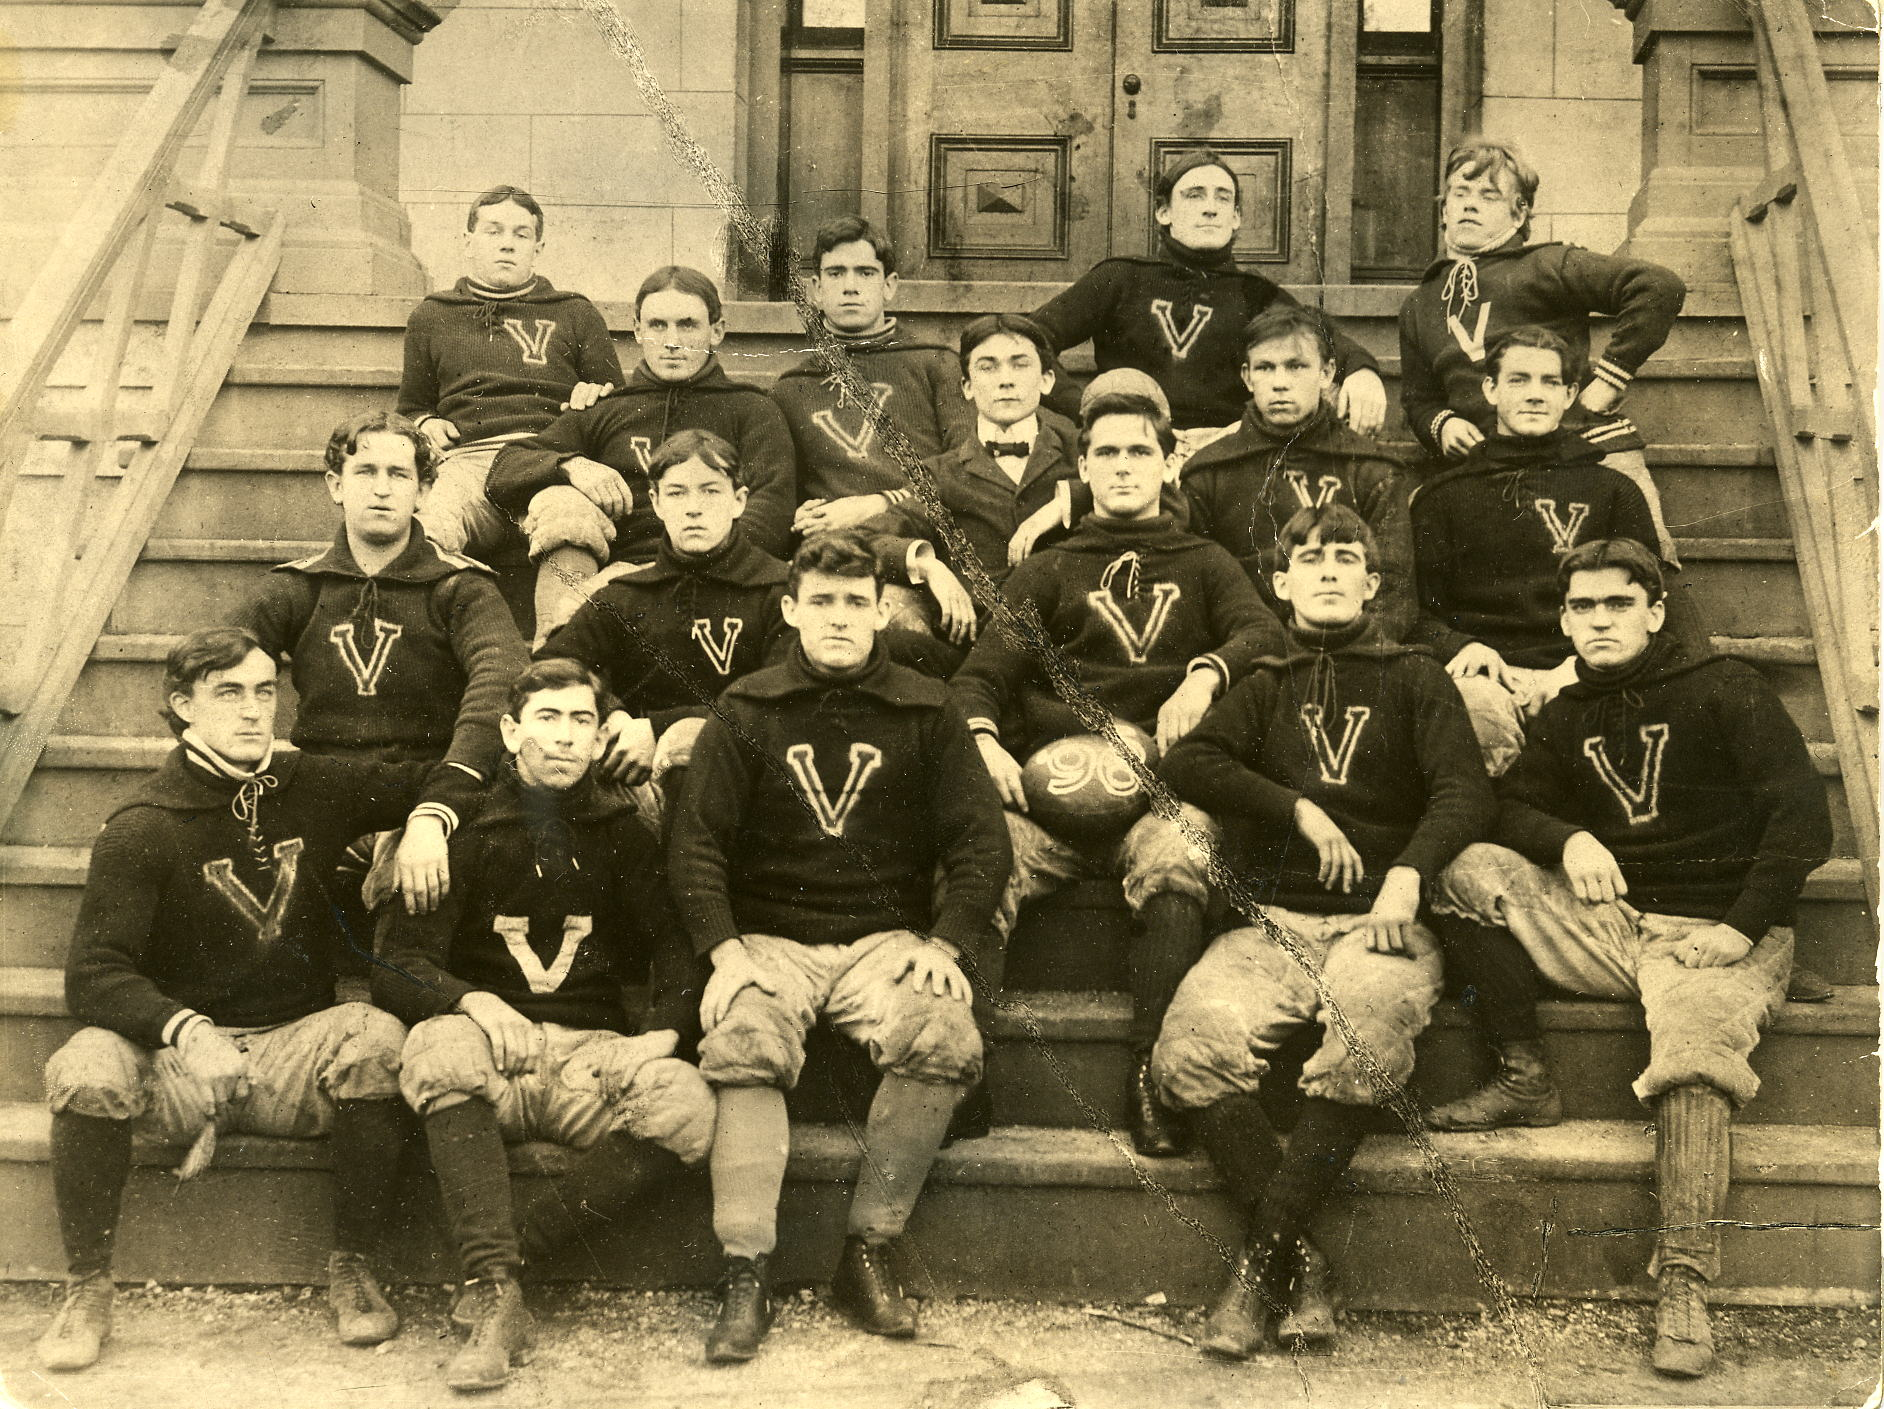 Villanova varsity football team, 1896